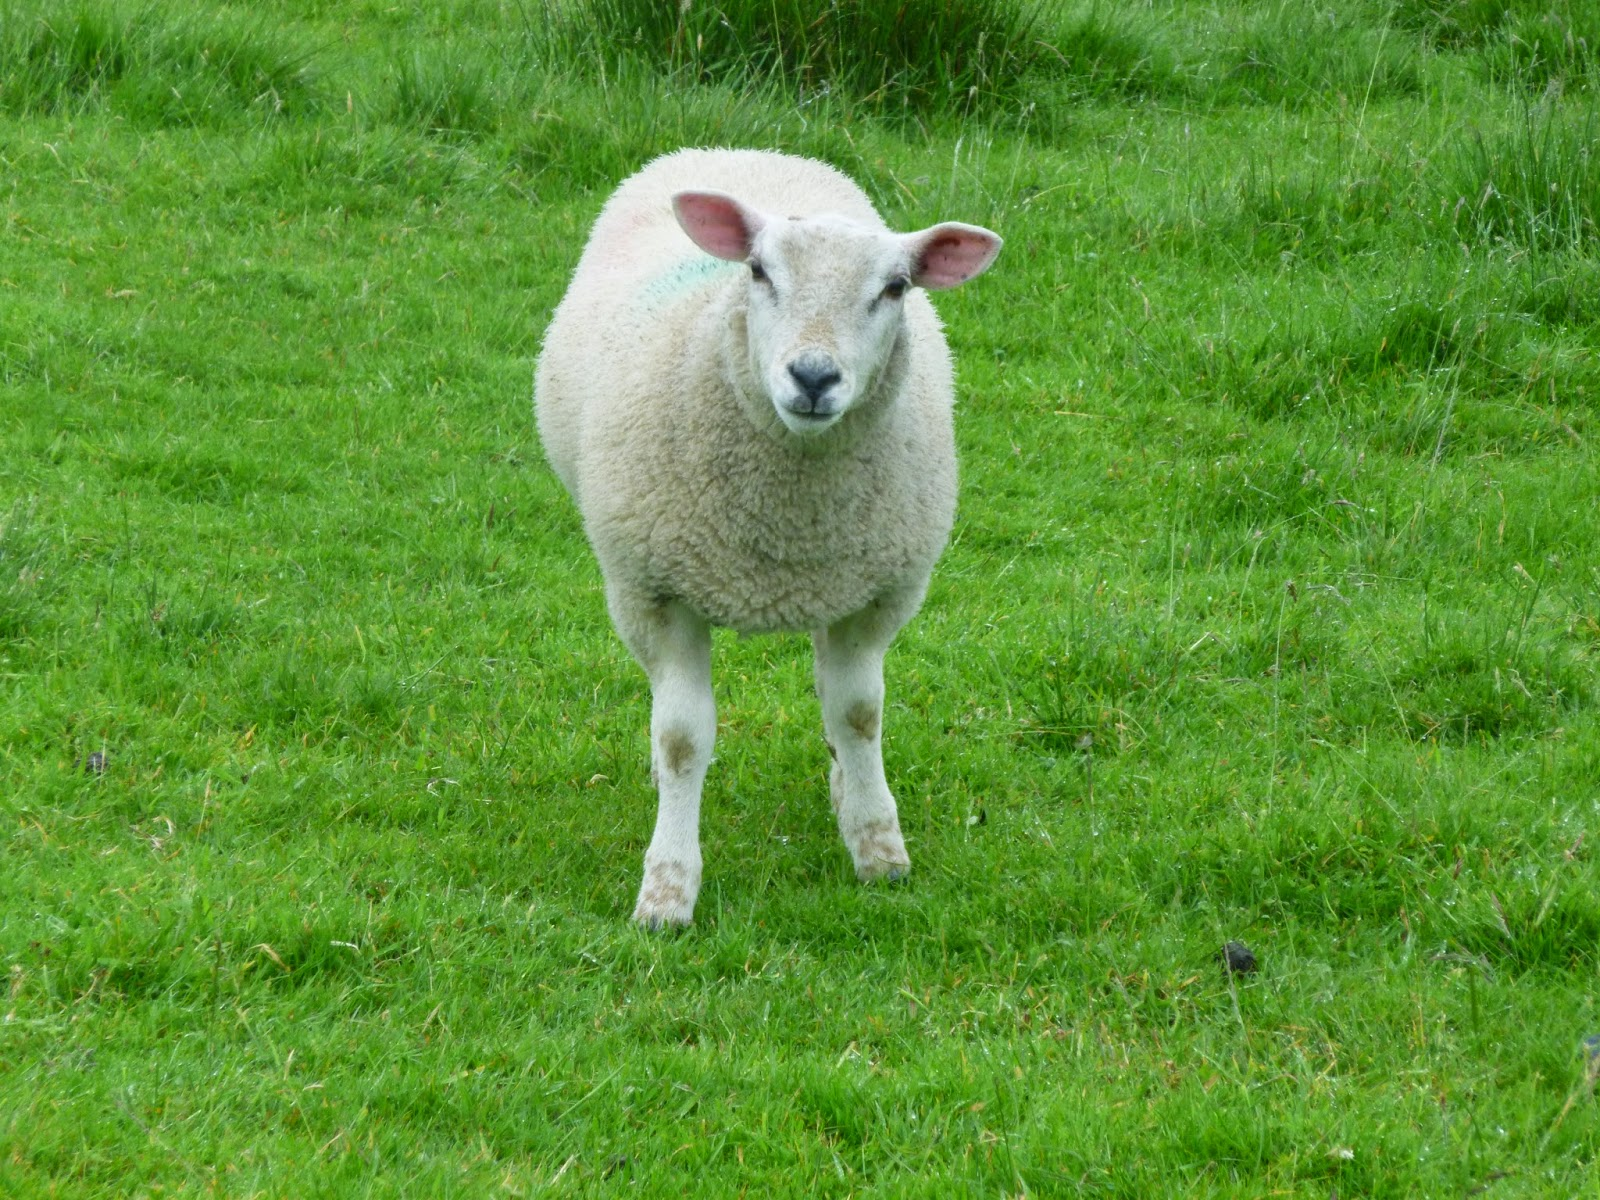 A white sheep looks quizzically at the camera from where it stands on the green lawn.